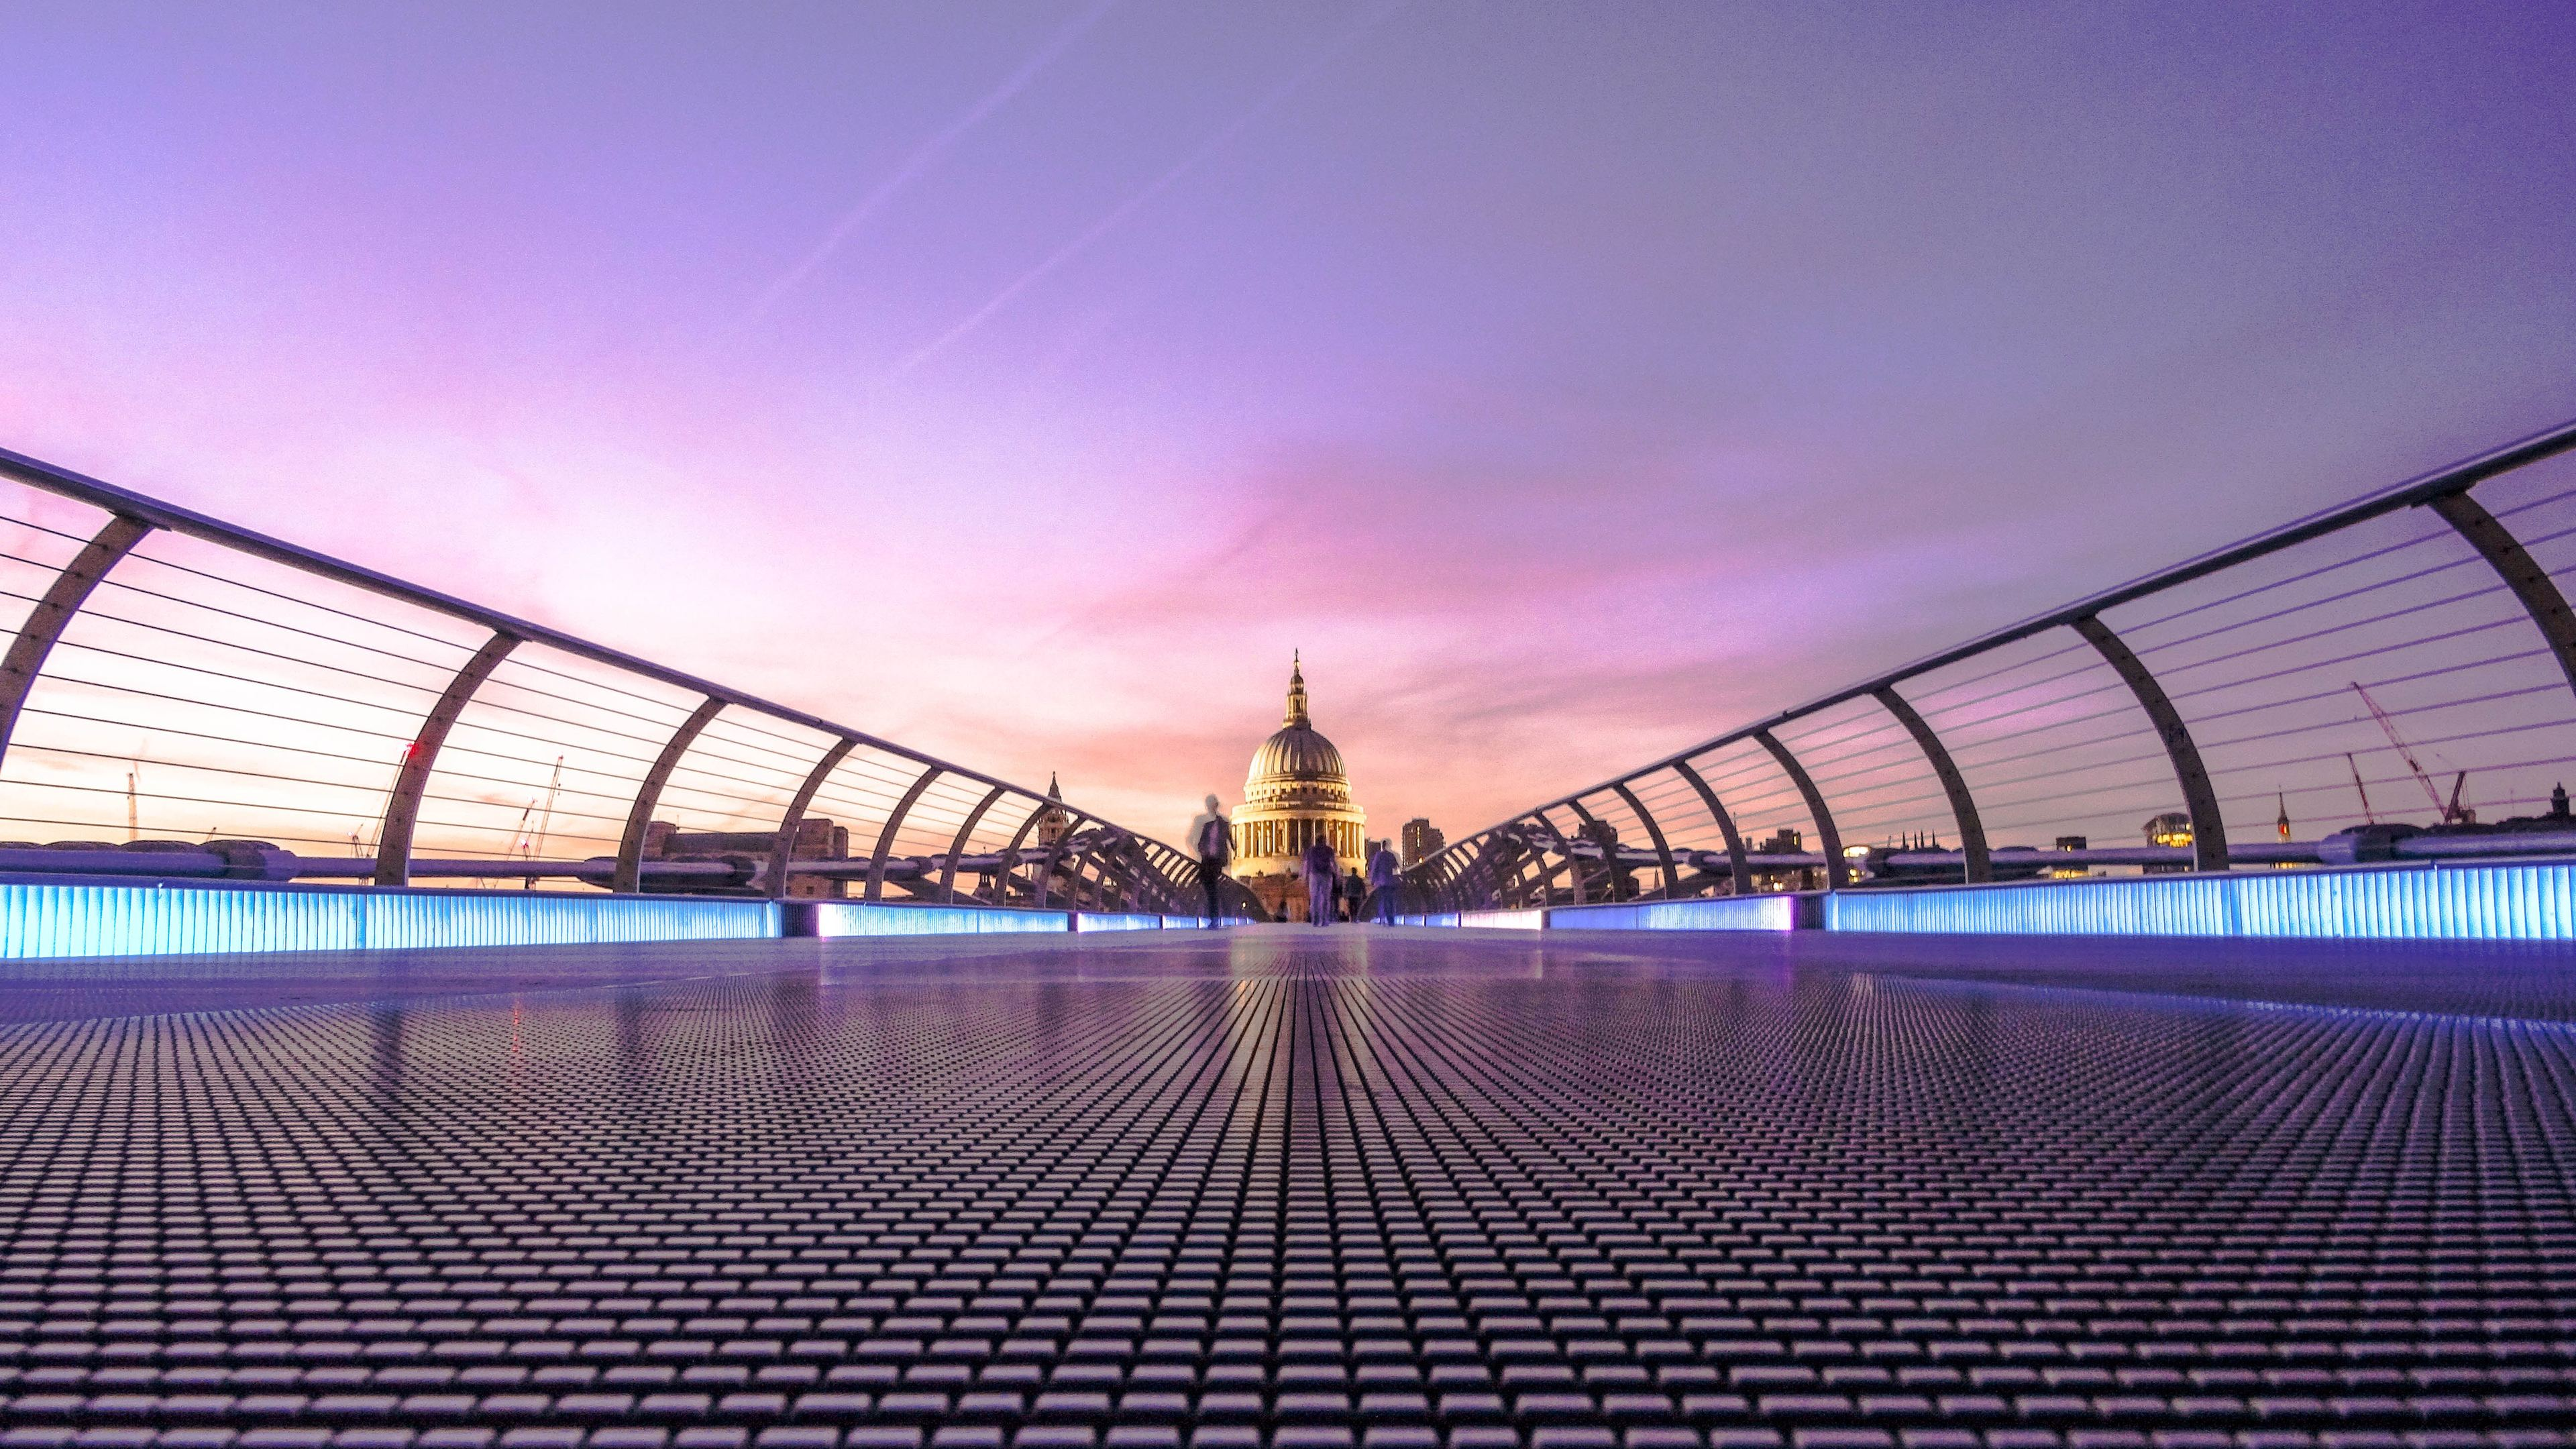 Wallpaper 4k Millennium Bridge London 5k 4k Wallpapers 5k